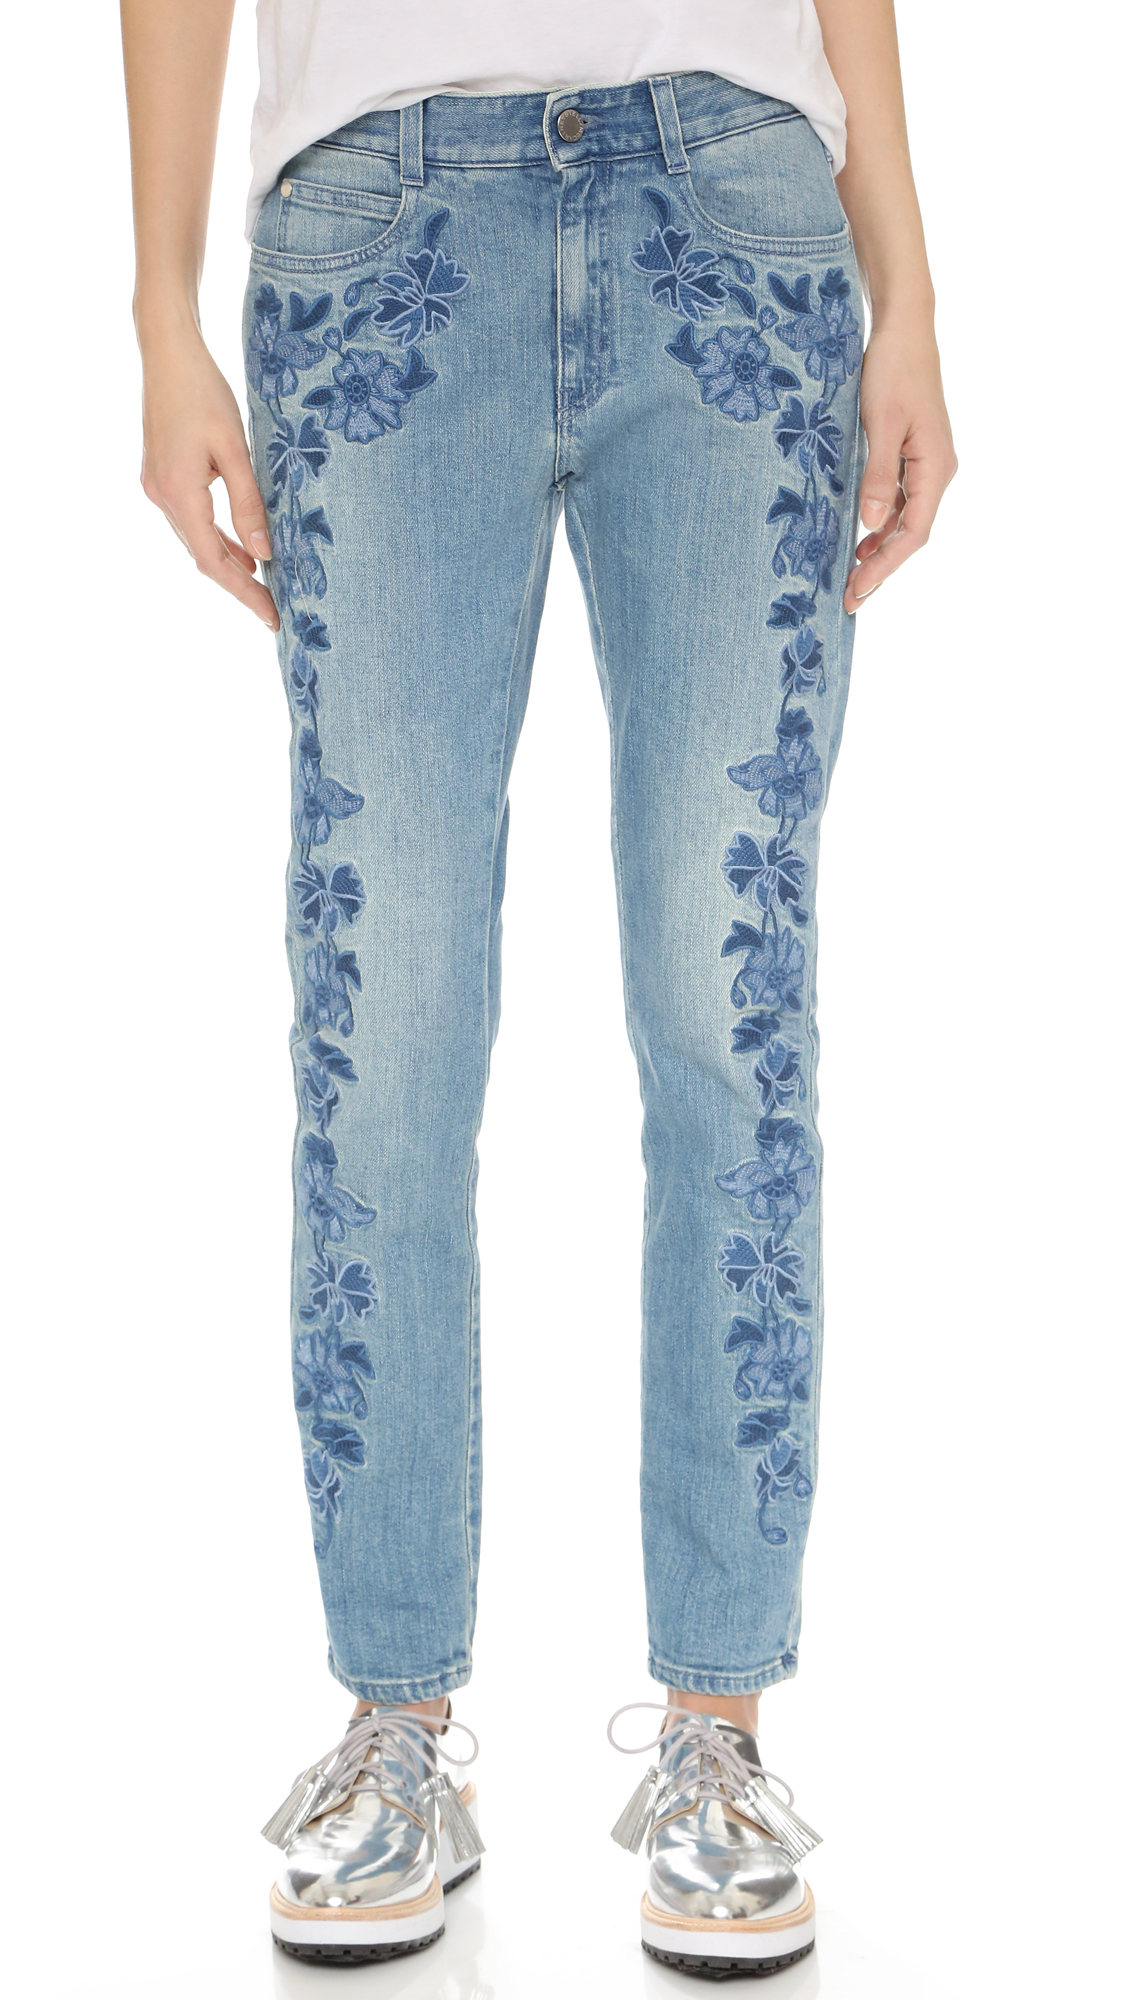 Lyst Stella Mccartney Embroidered Floral Jeans In Blue